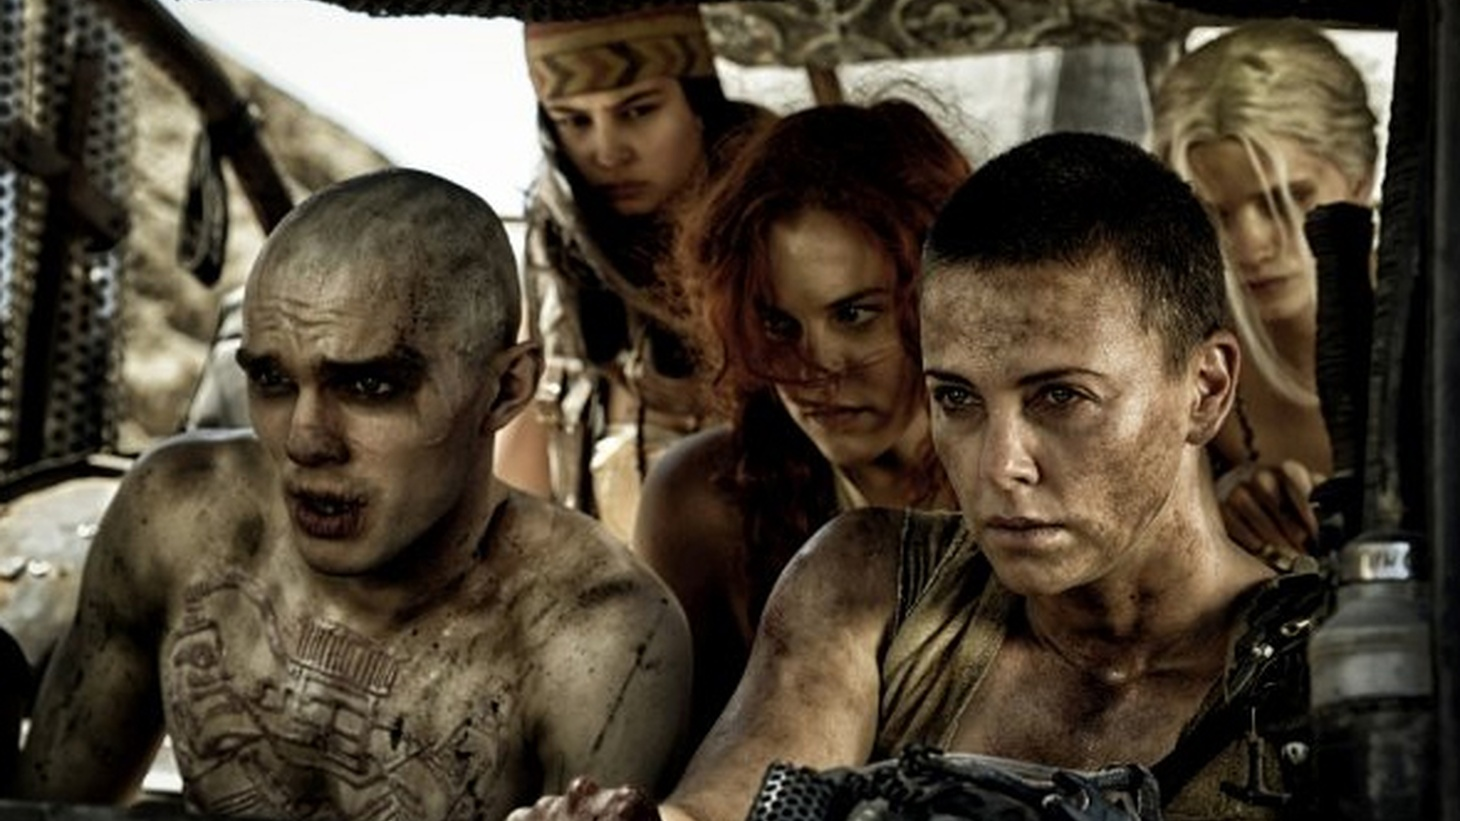 George Miller, whose Mad Max gave the movie medium a new genre almost four decades ago, is back with Mad Max: Fury Road.